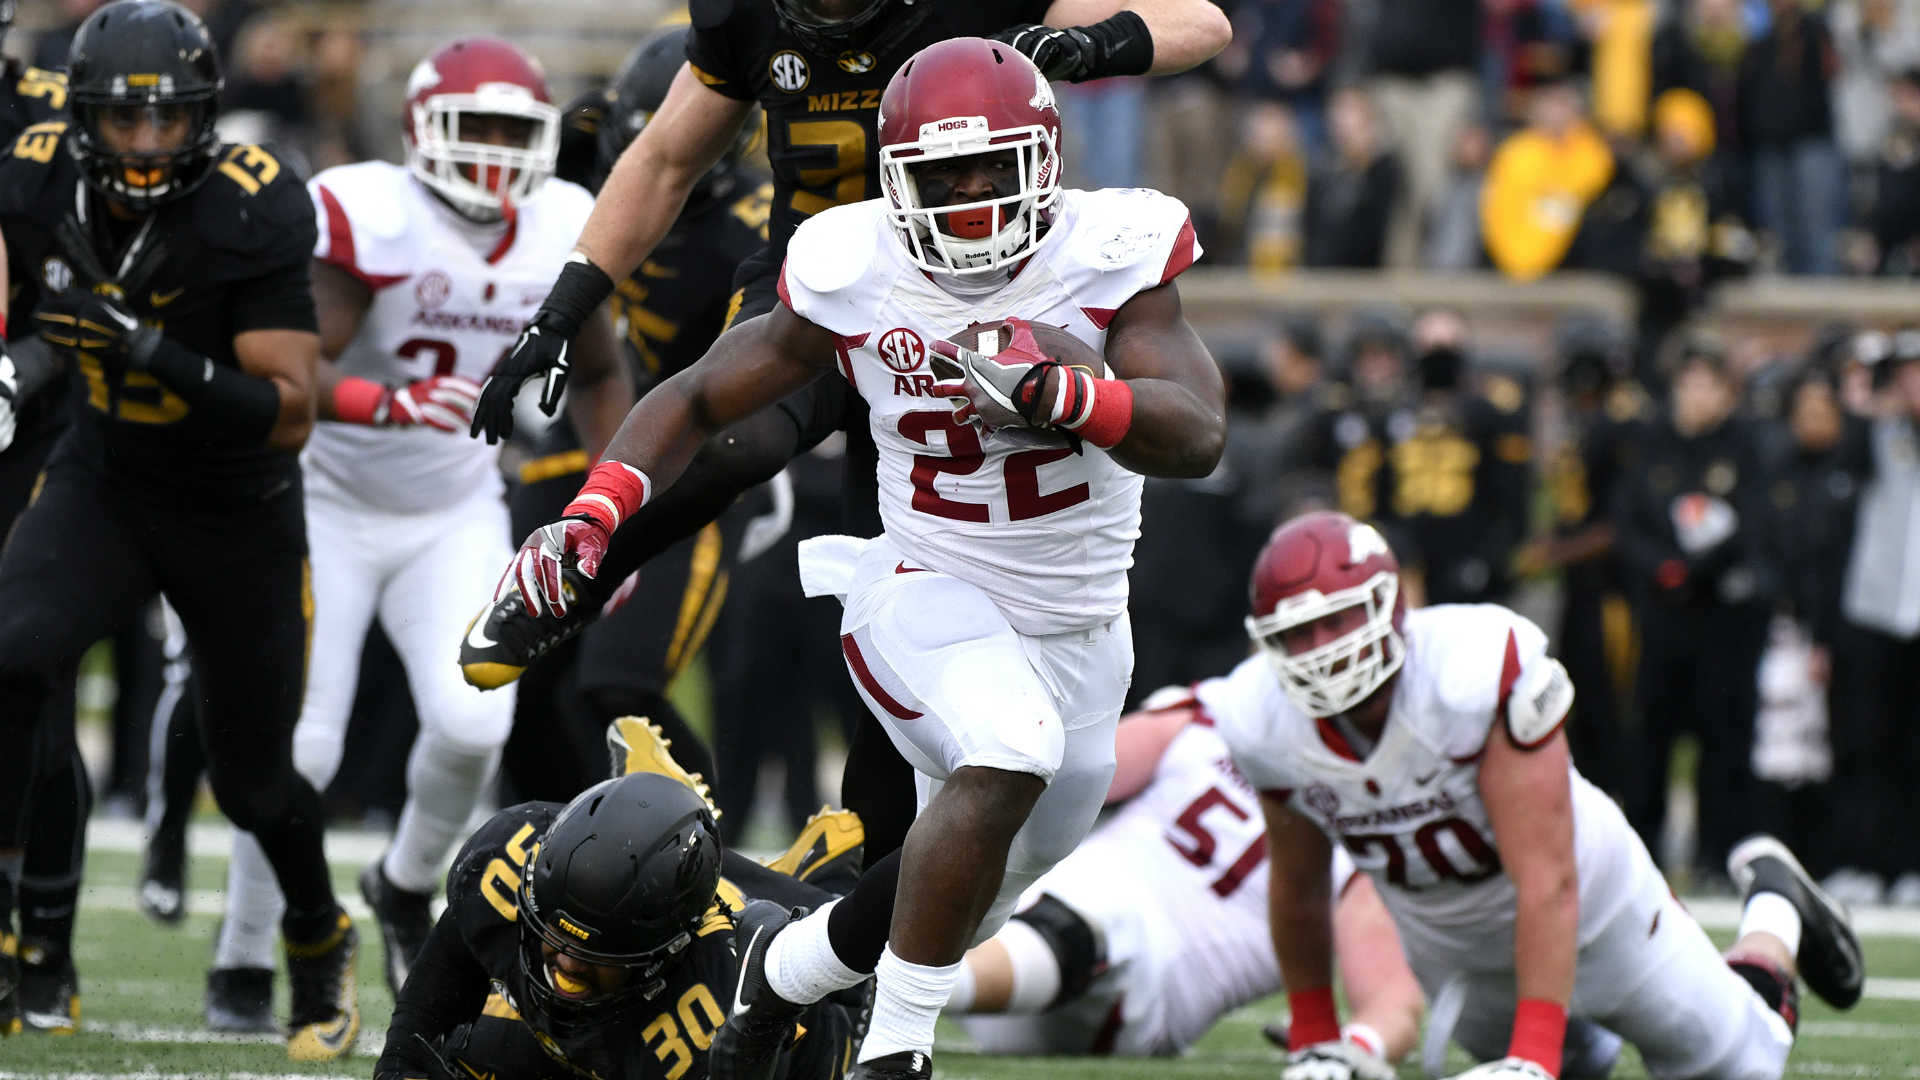 Arkansas' Rawleigh Williams ends football career after second neck injury